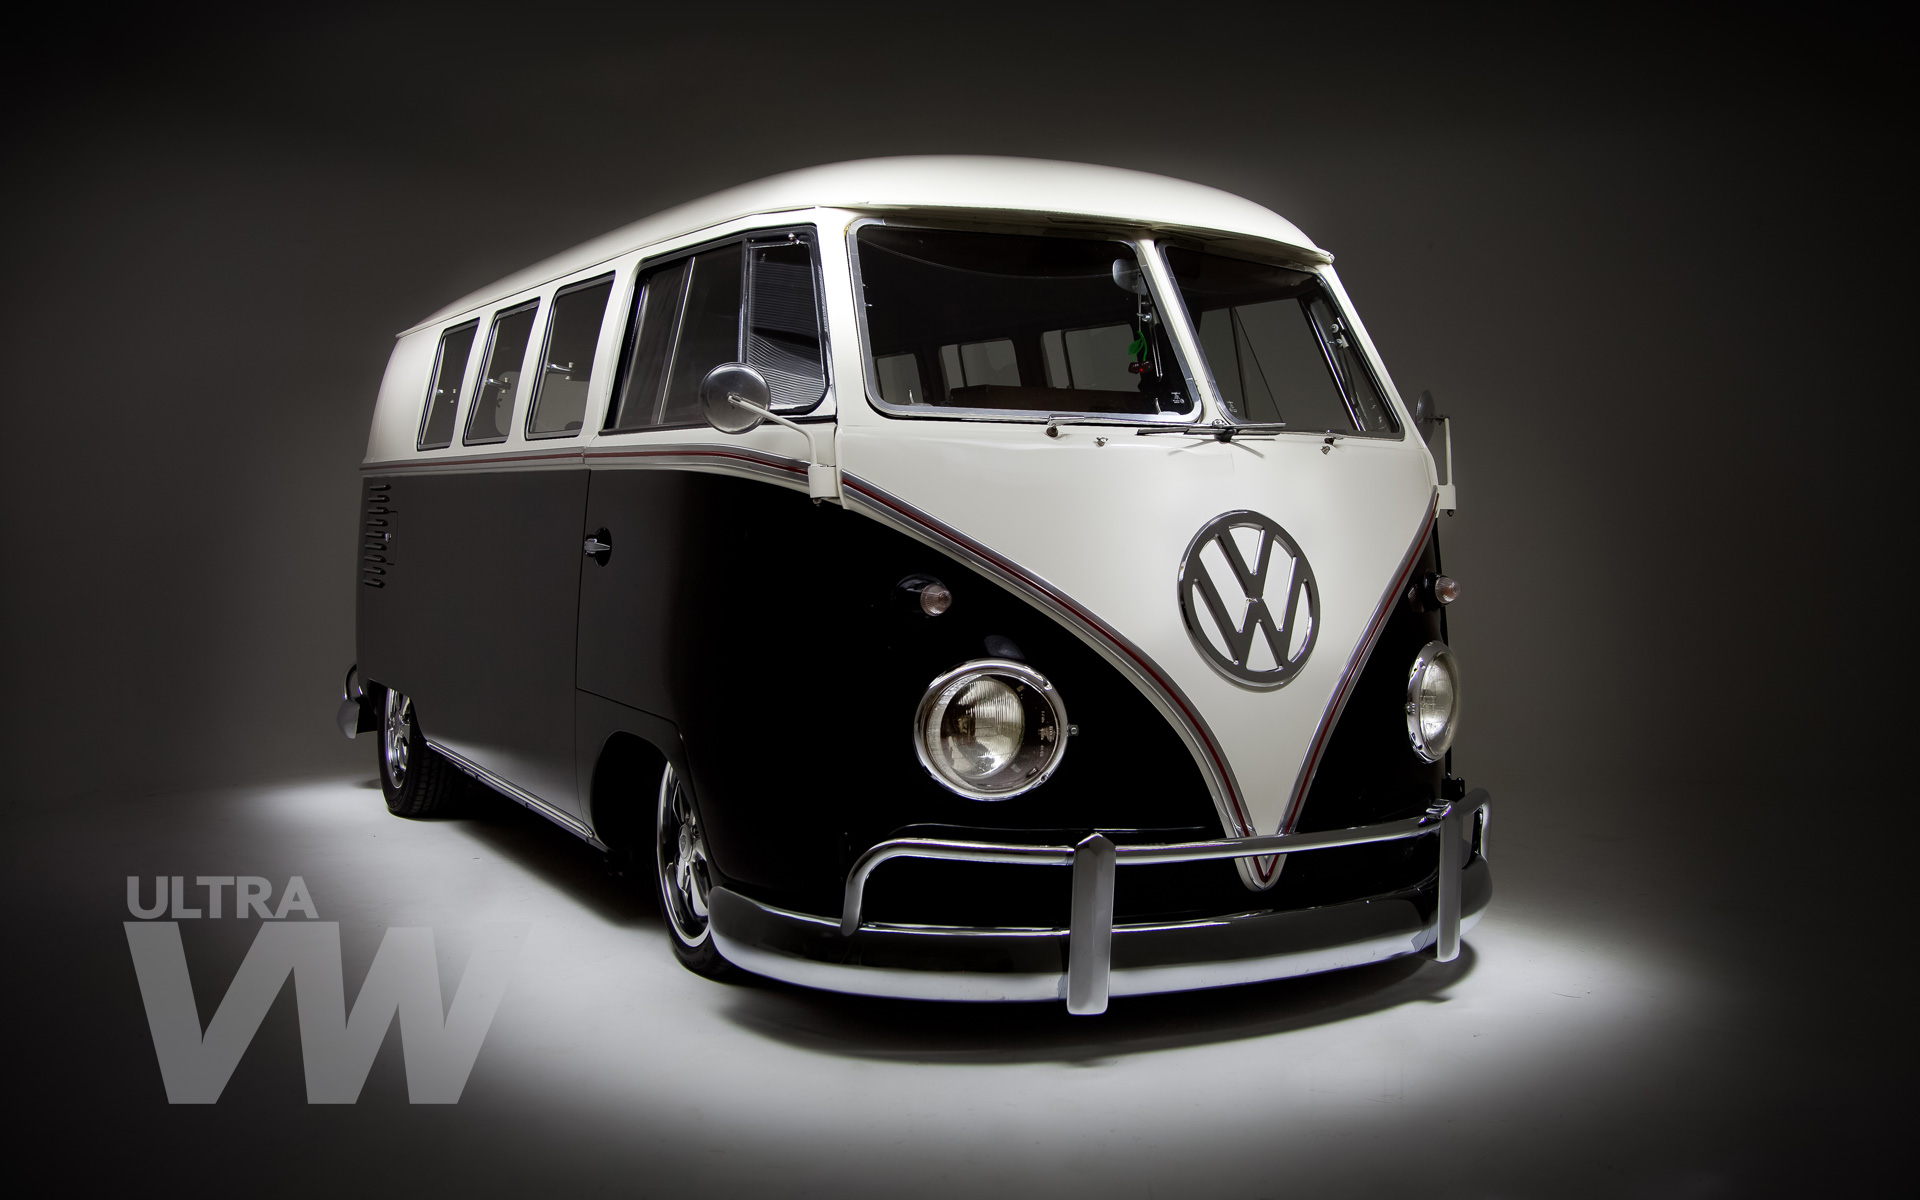 VW random VW related action blog Download awesome Ultra VW wallpaper 1920x1200